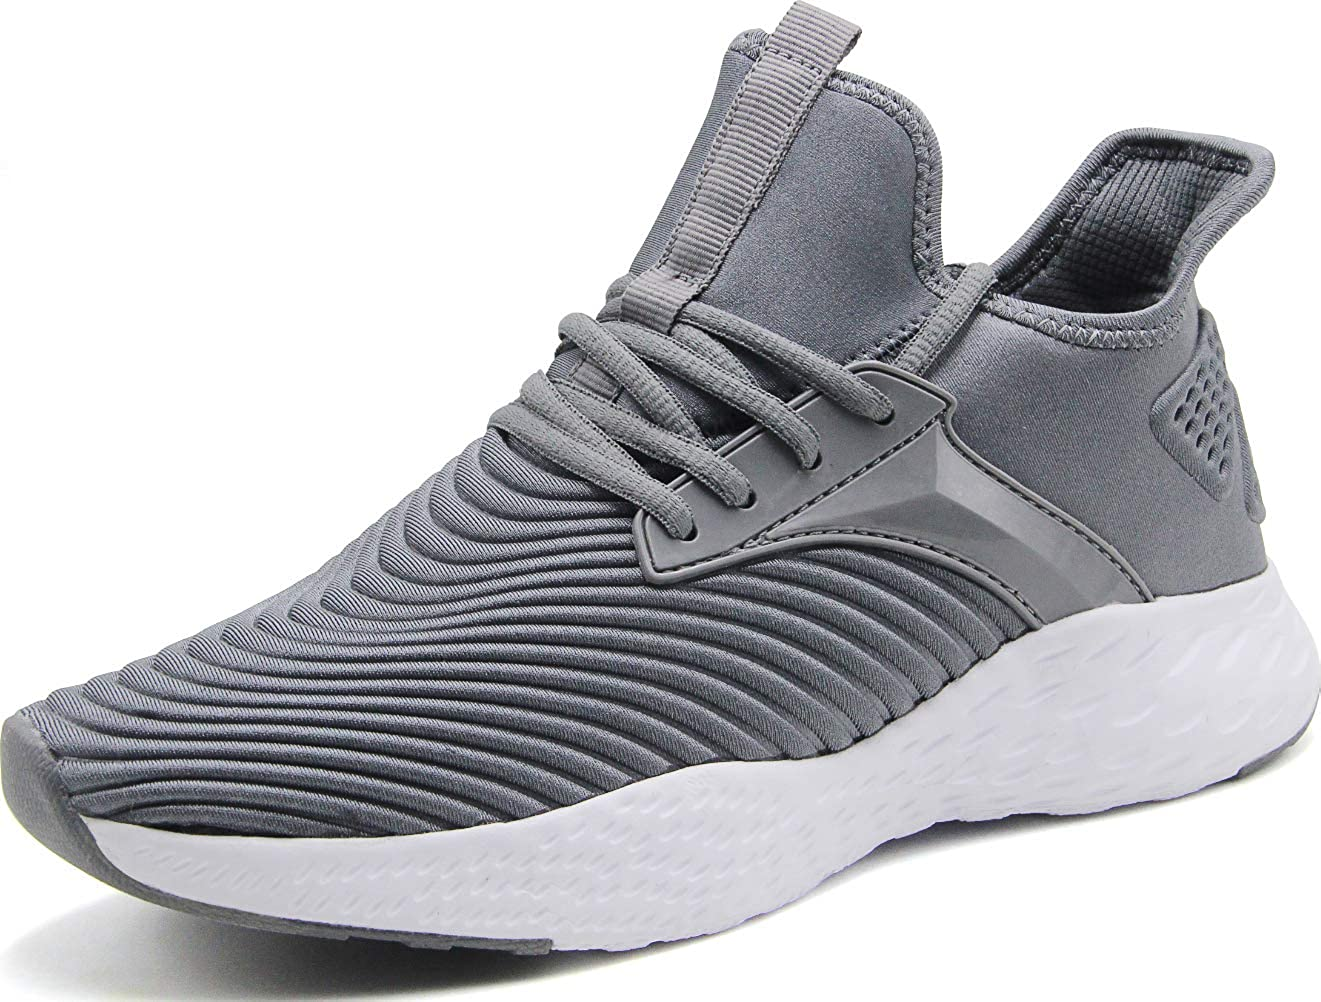 Weweya Running Shoes Men Athletic Gym Casual Walking Shoes Tennis /& Racquet Sports Shoes Fitness /& Cross-Training Shoes Cycling Road Running Sneakers